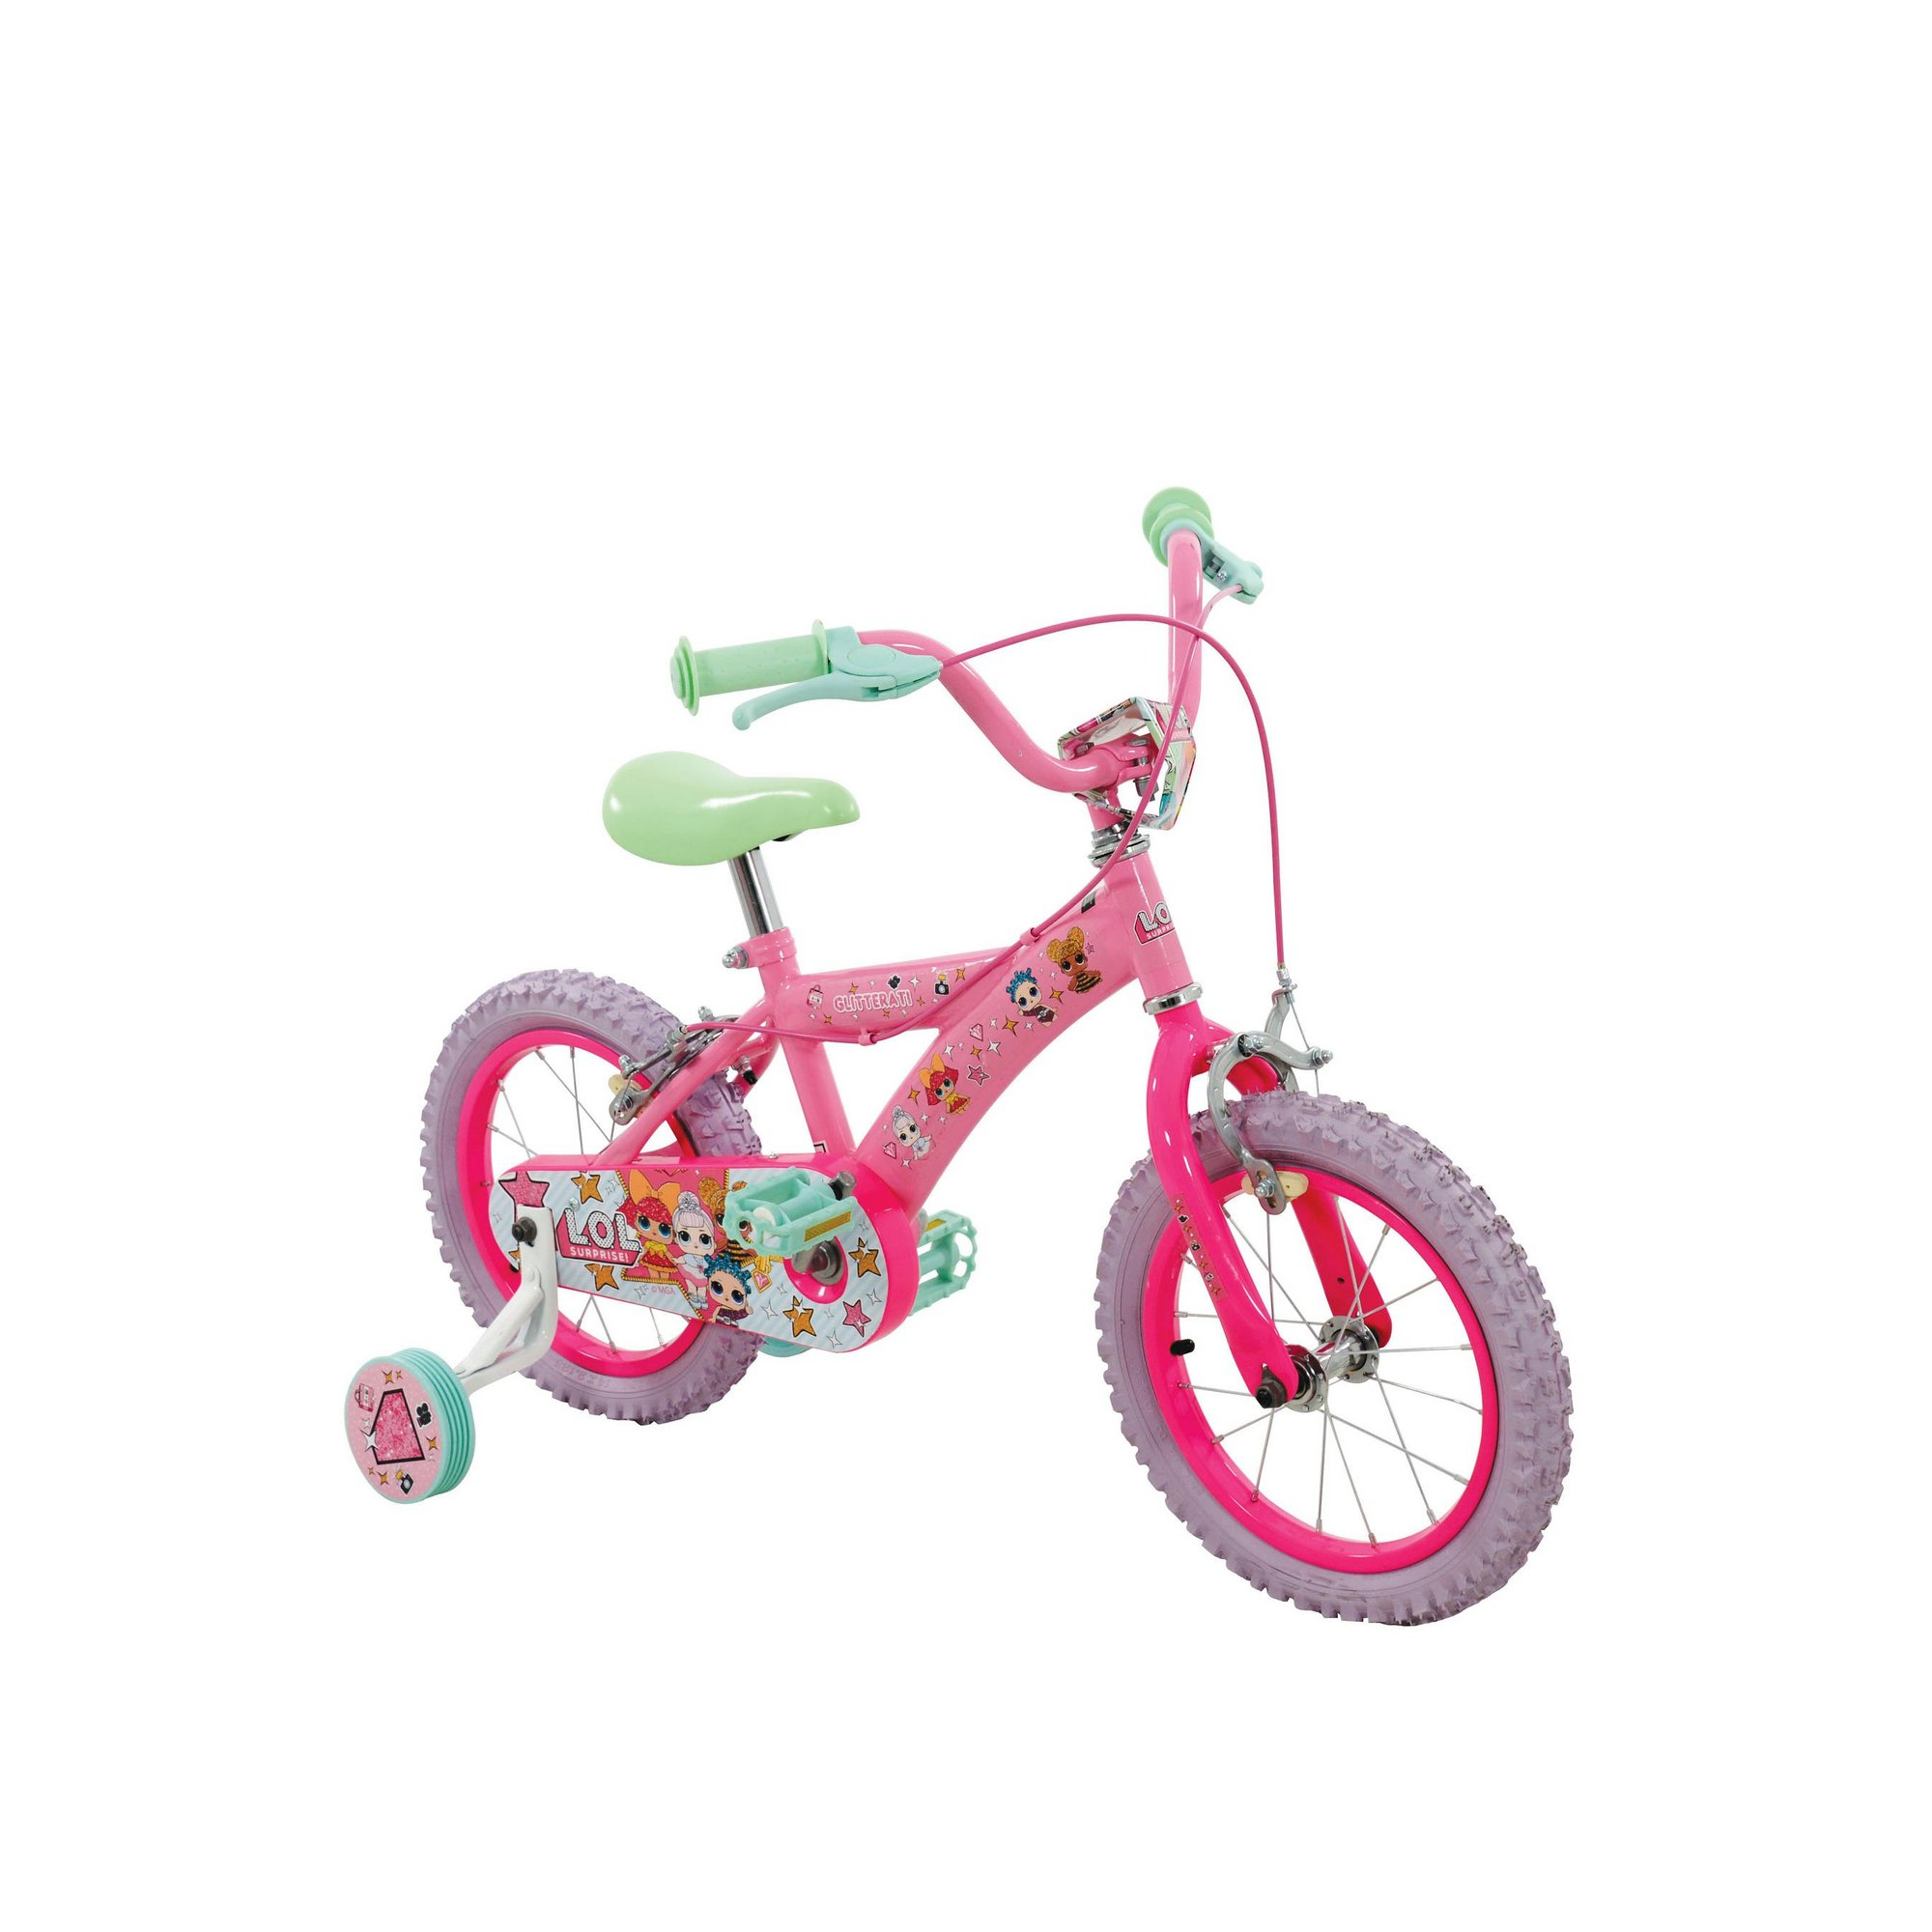 Image of Kids L.O.L Surprise! 14 Inch Bike